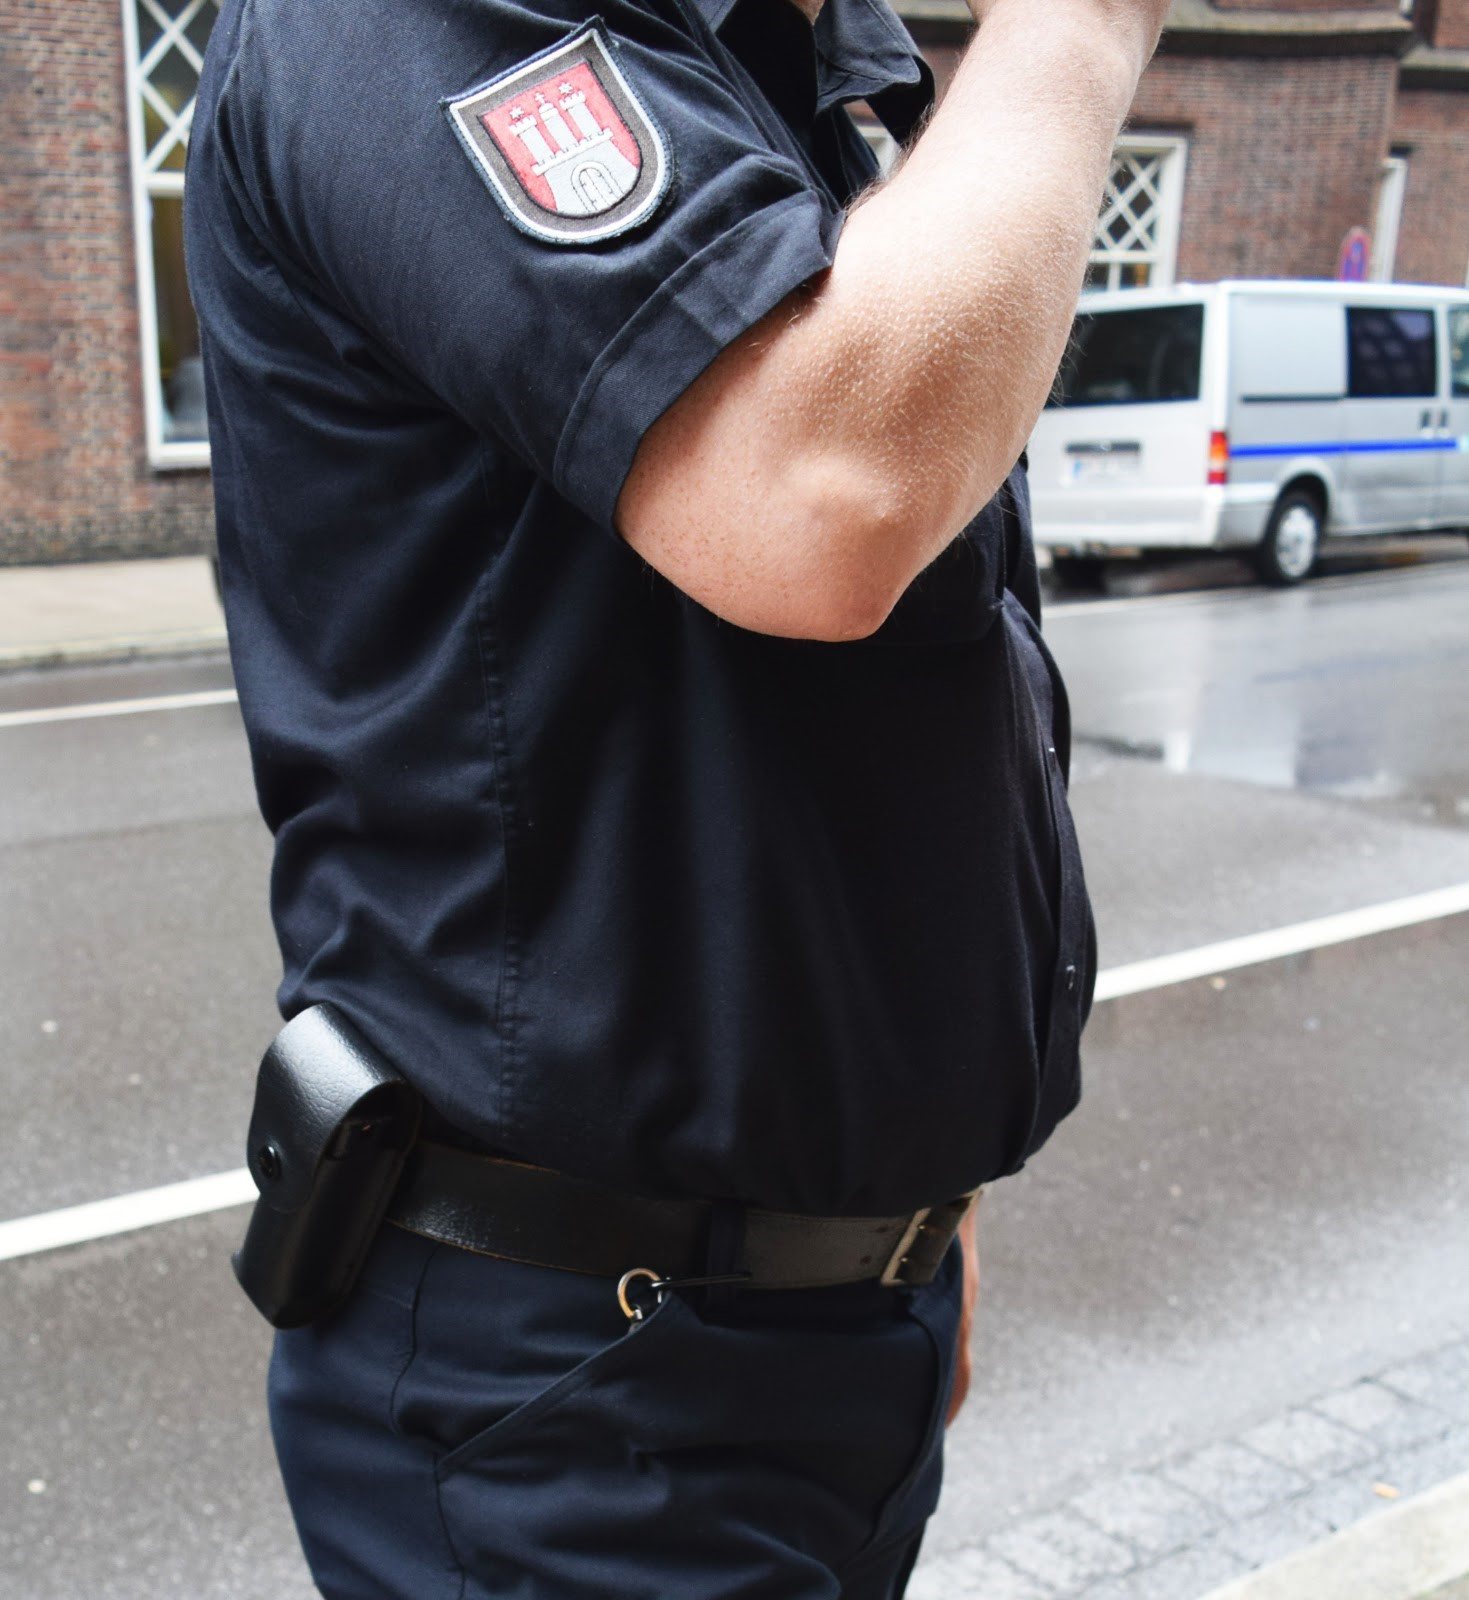 A security guard, patrolling the streets of Hamburg, Germany, carries pepper spray on his belt. He says the difference between his pepper spray and civilian pepper spray is the weight of the bottle and strength of the spray. Sharmaine Jenny Penning/DMJX